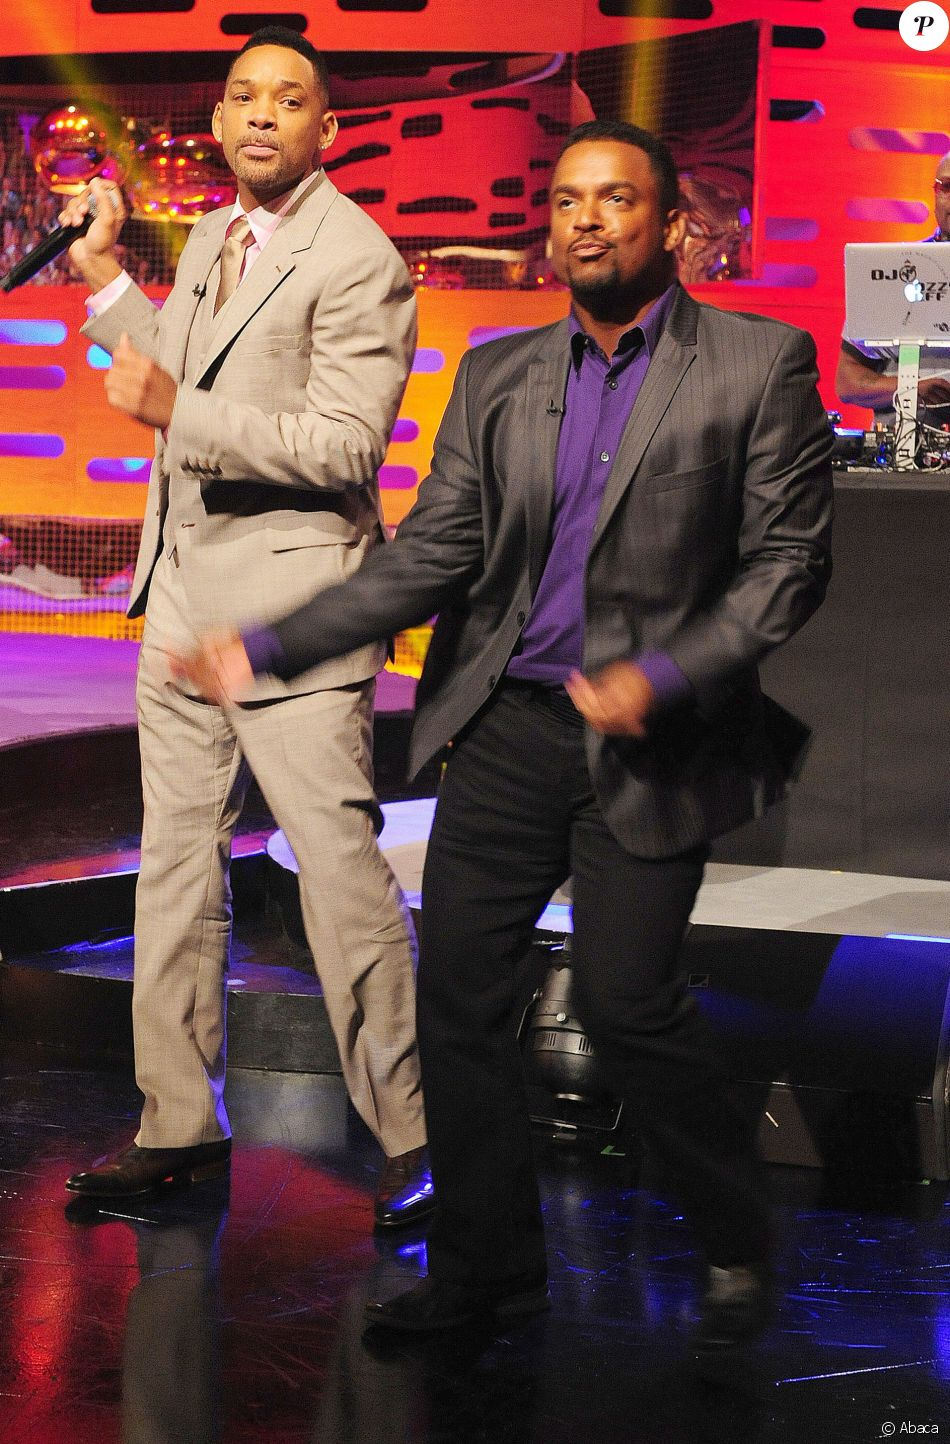 Will Smith et Alfonso Ribeiro sur le plateau du Graham North Show. Londres, mai 2013.